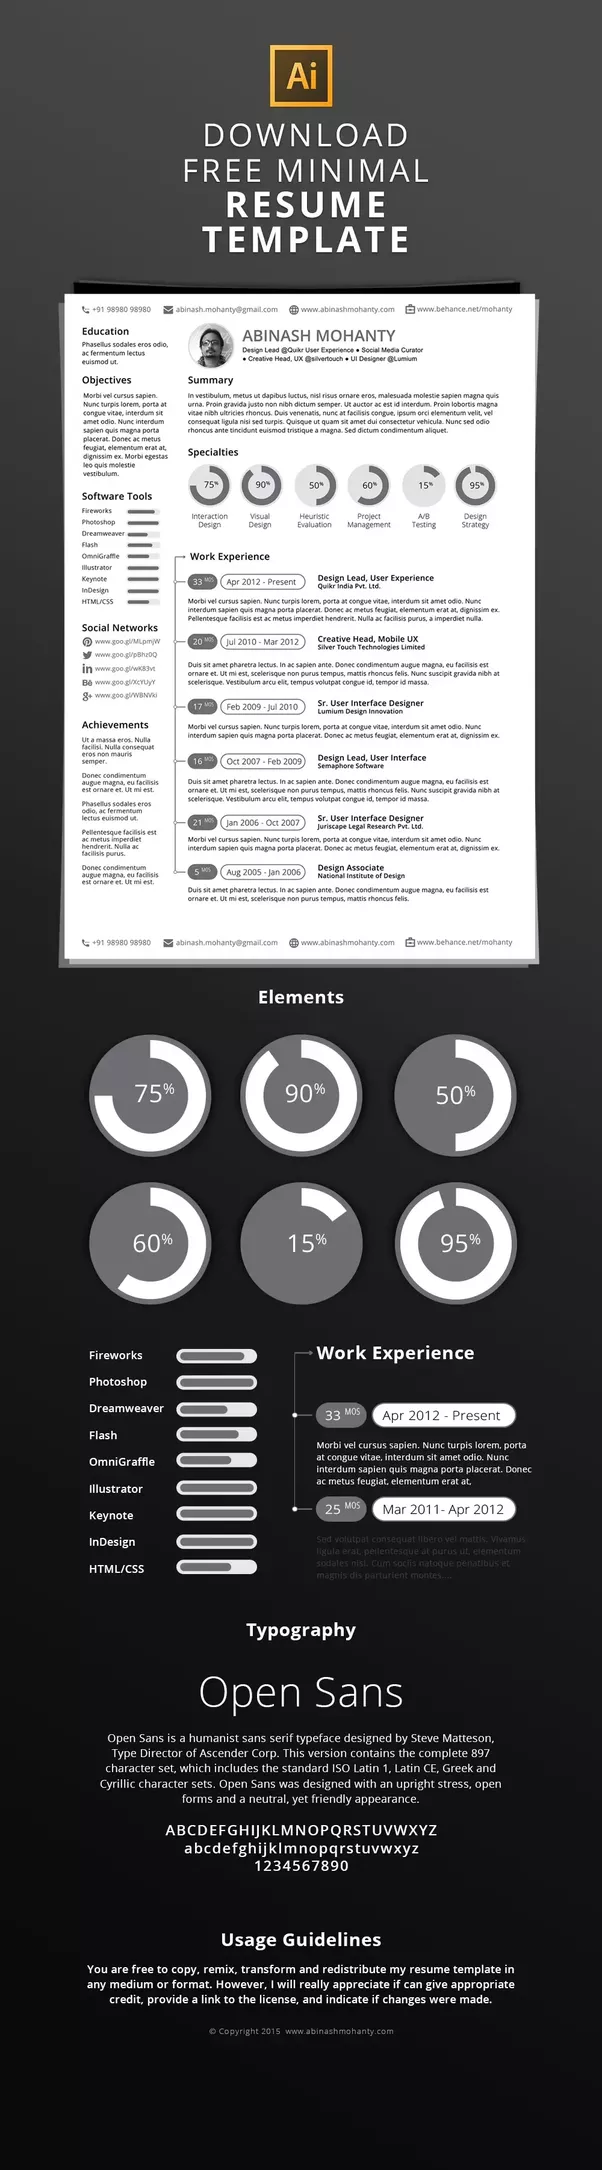 What are the most visually creative resumes you\'ve seen? - Quora